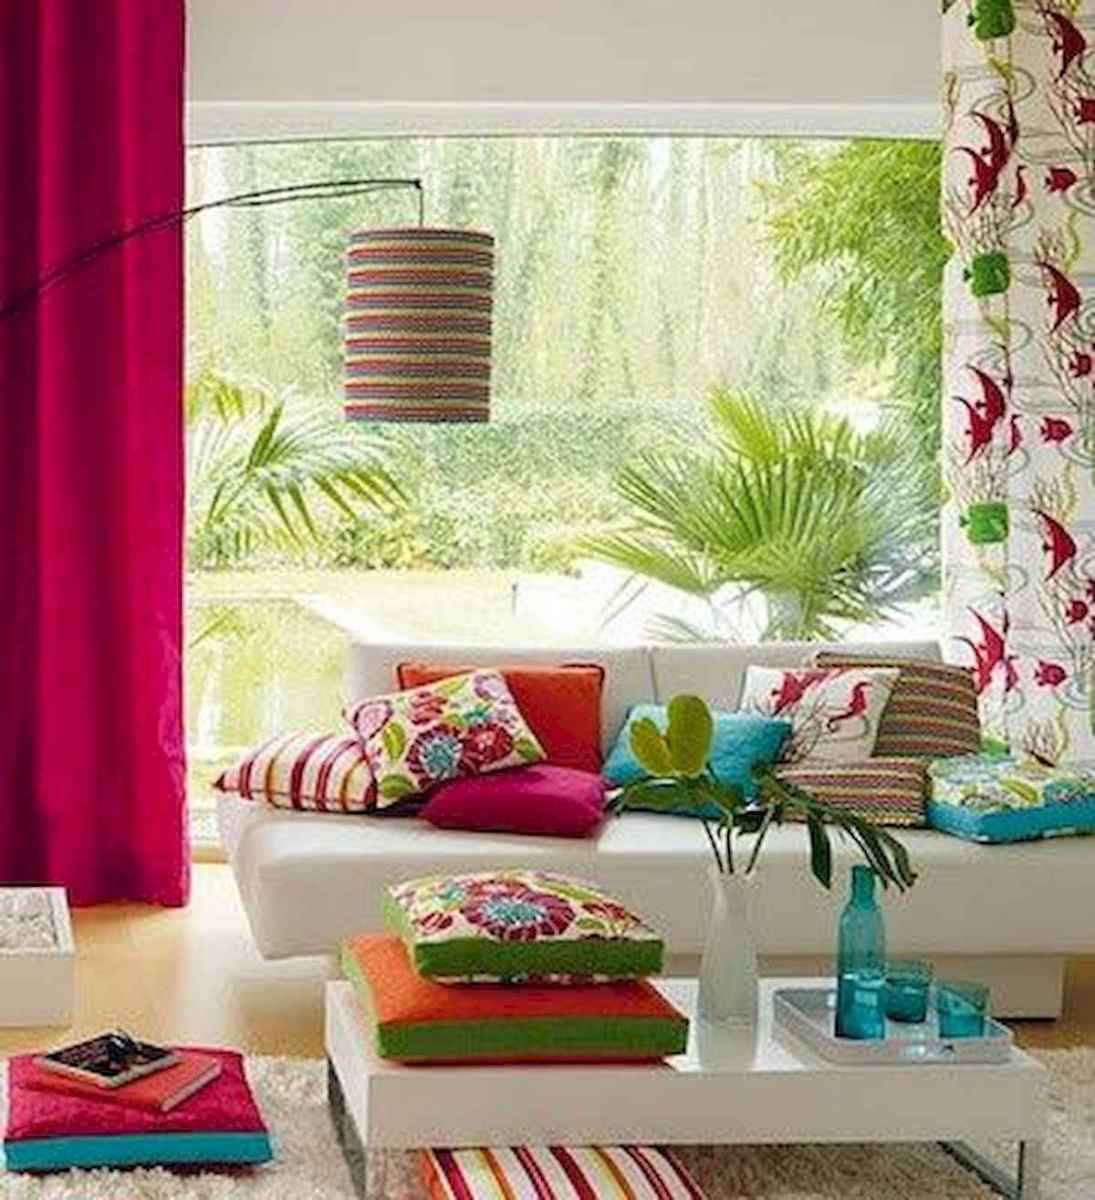 80+ Stunning Colorful Living Room Decor Ideas And Remodel for Summer Project (64)